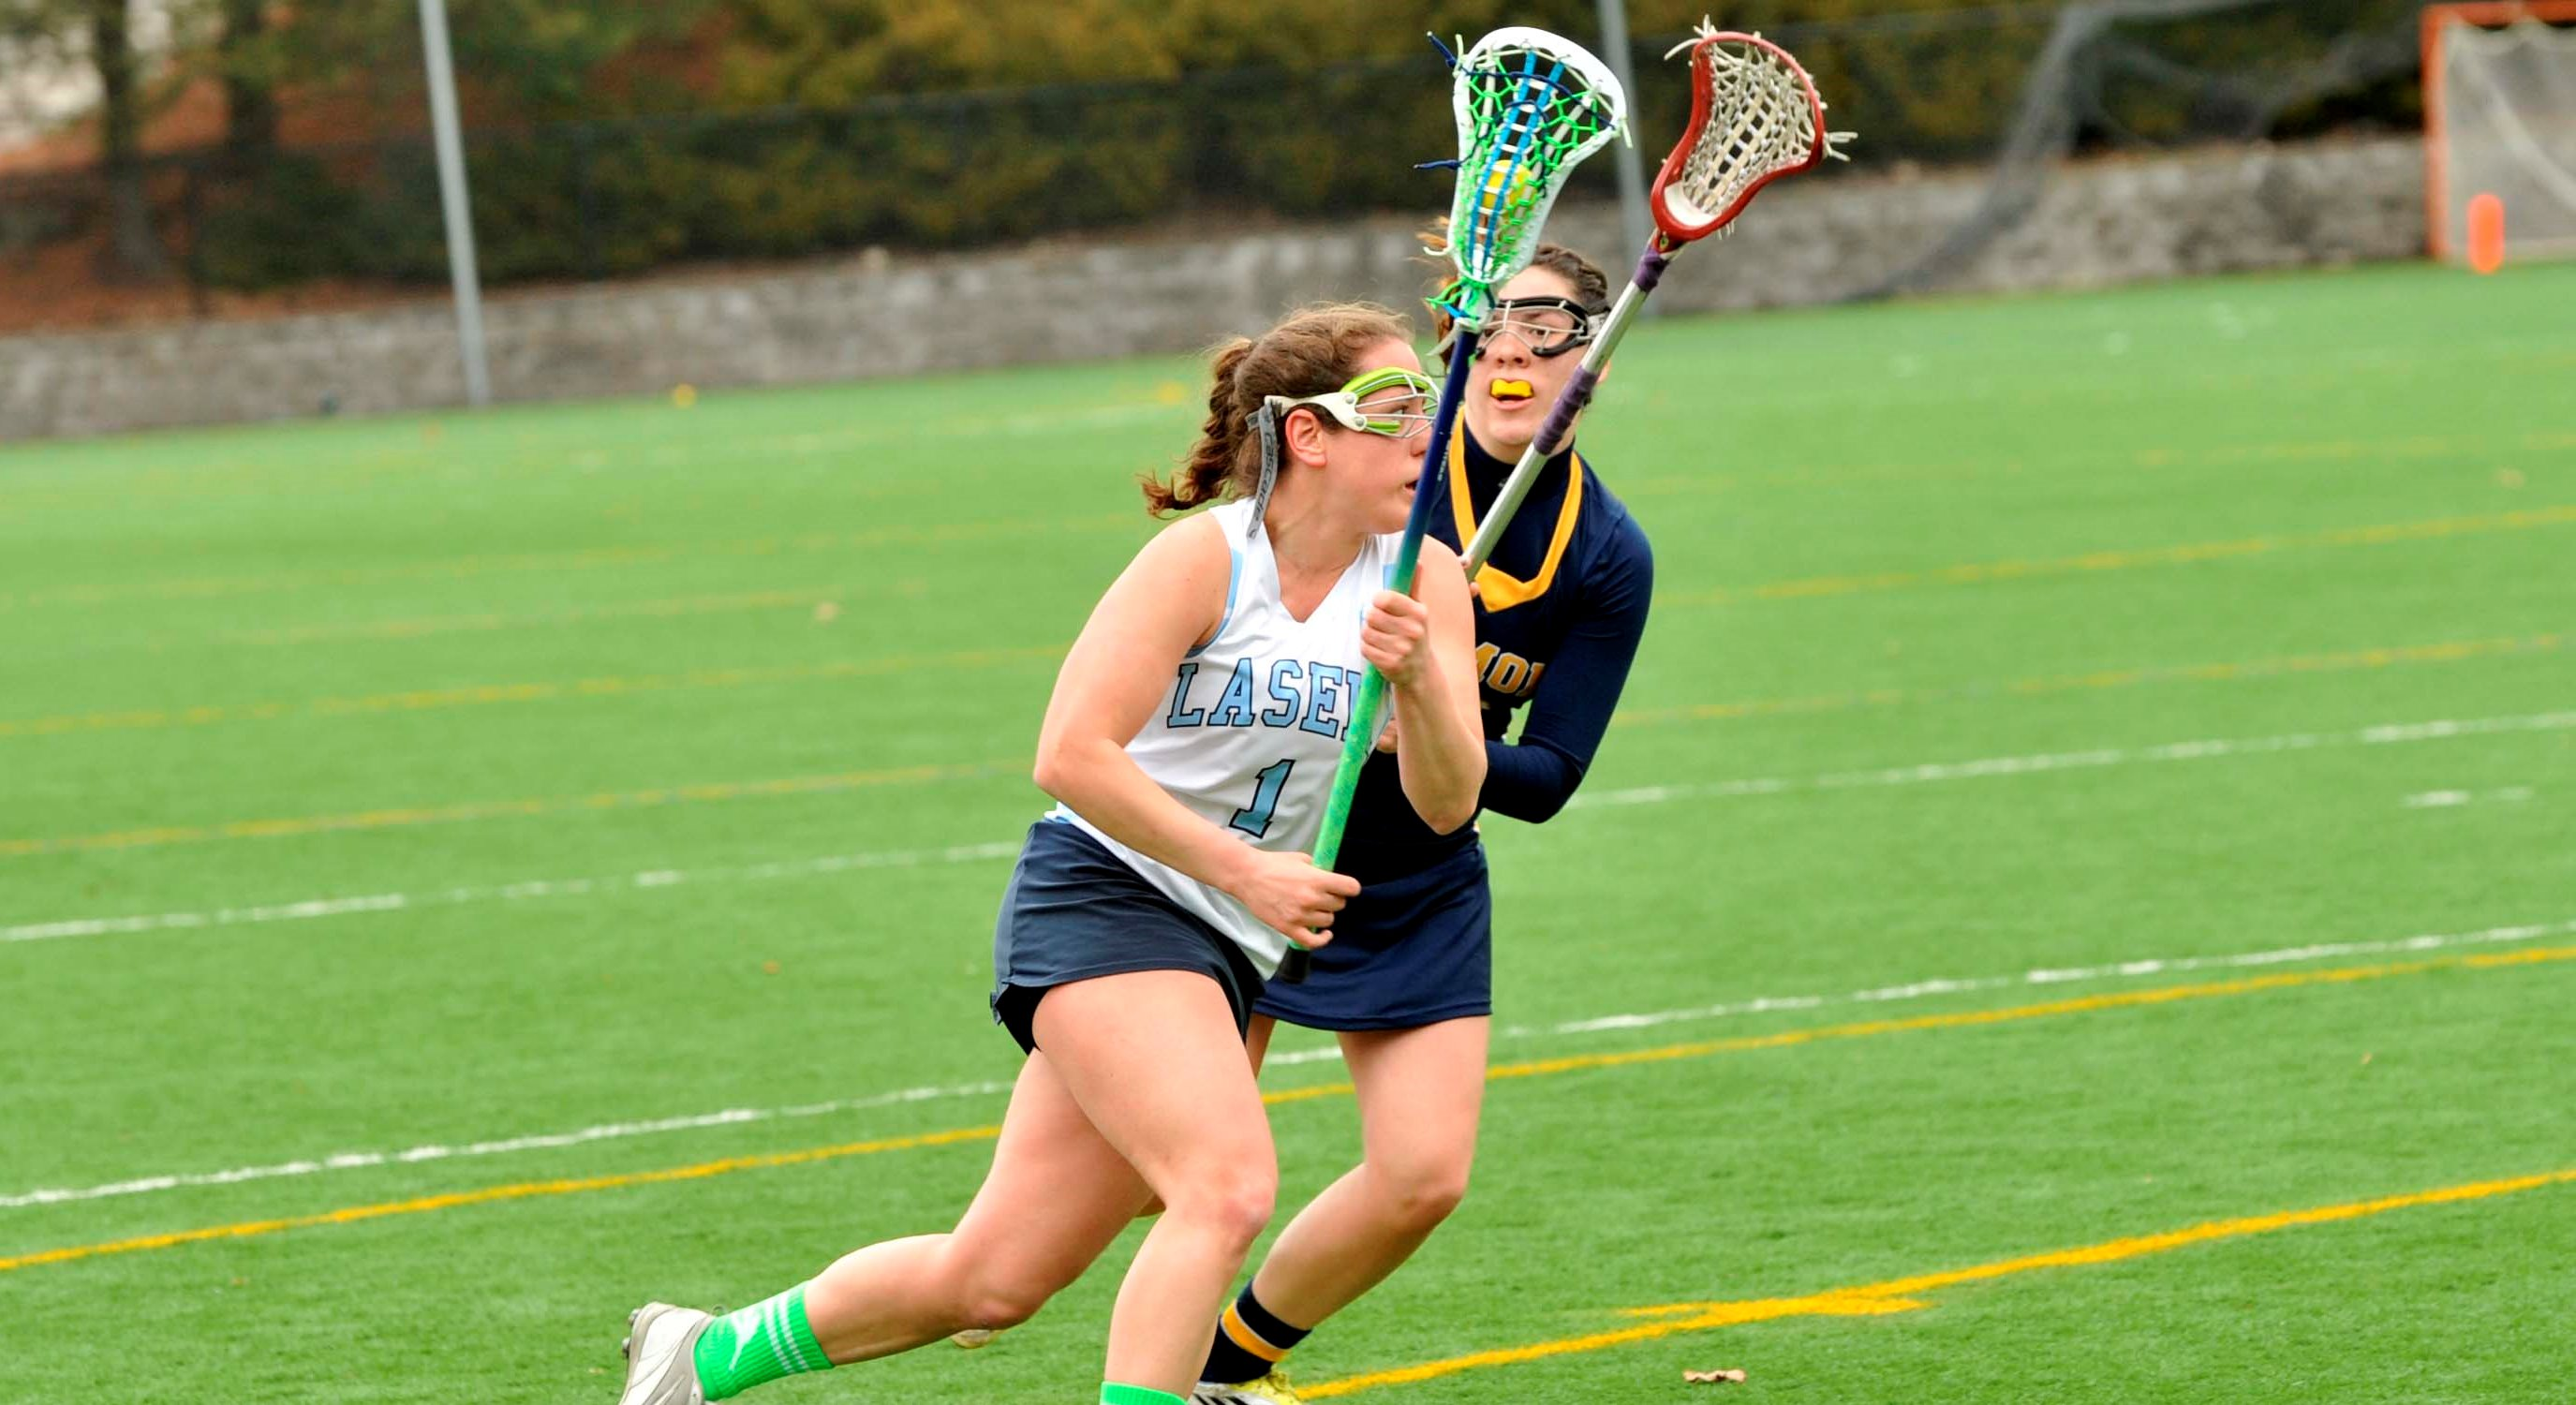 Women's Lacrosse Falls, 11-7 in GNAC Quarterfinals to Rivier